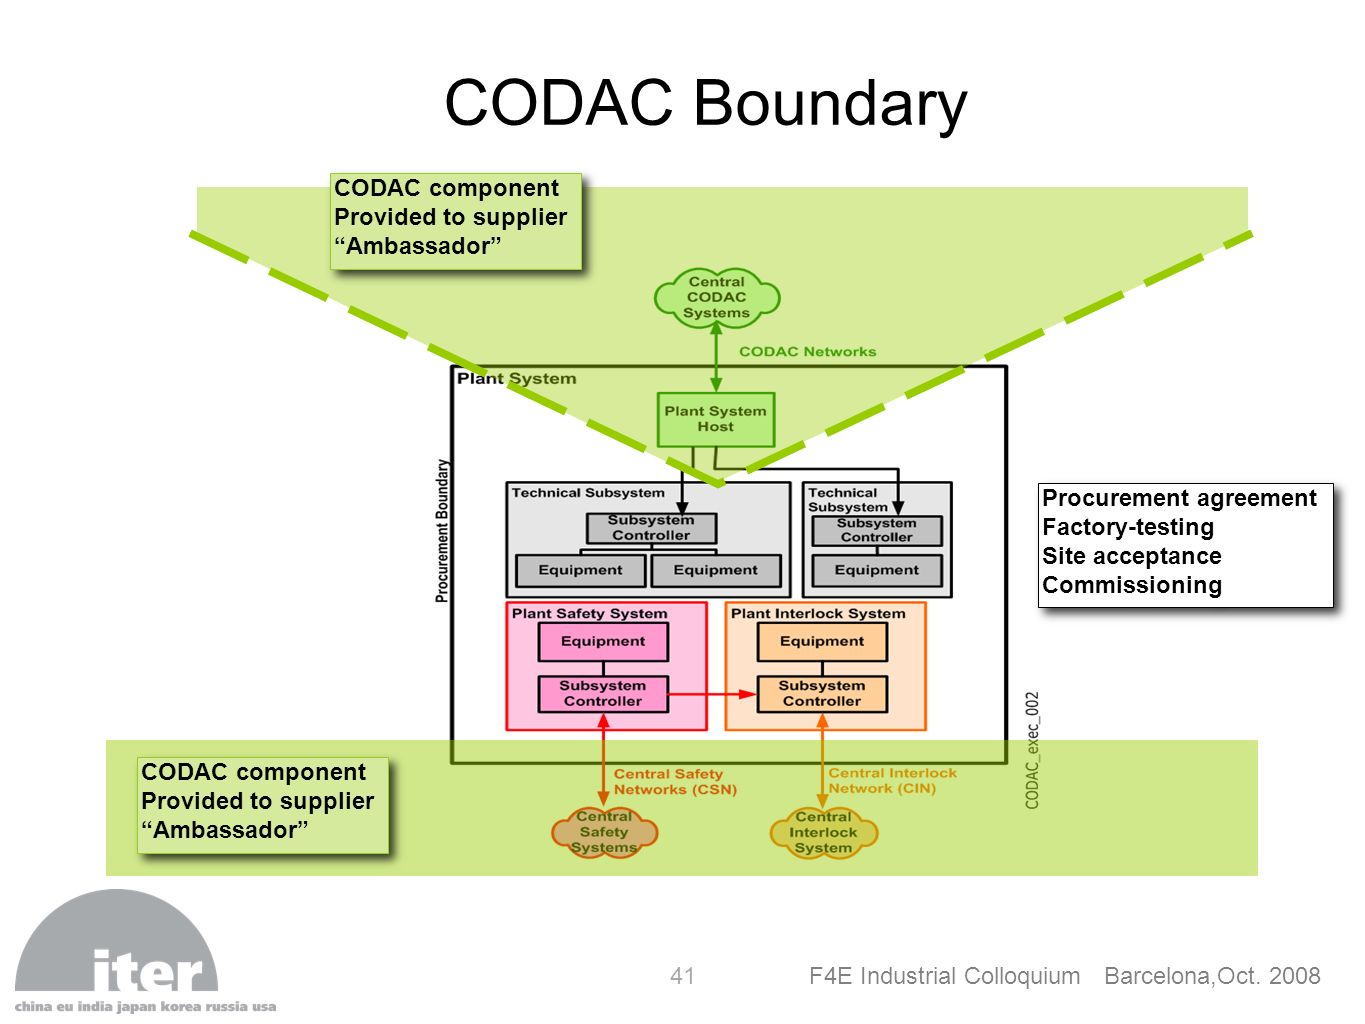 F4E Industrial Colloquium Barcelona,Oct. 2008 41 CODAC Boundary CODAC component Provided to supplier Ambassador CODAC component Provided to supplier A